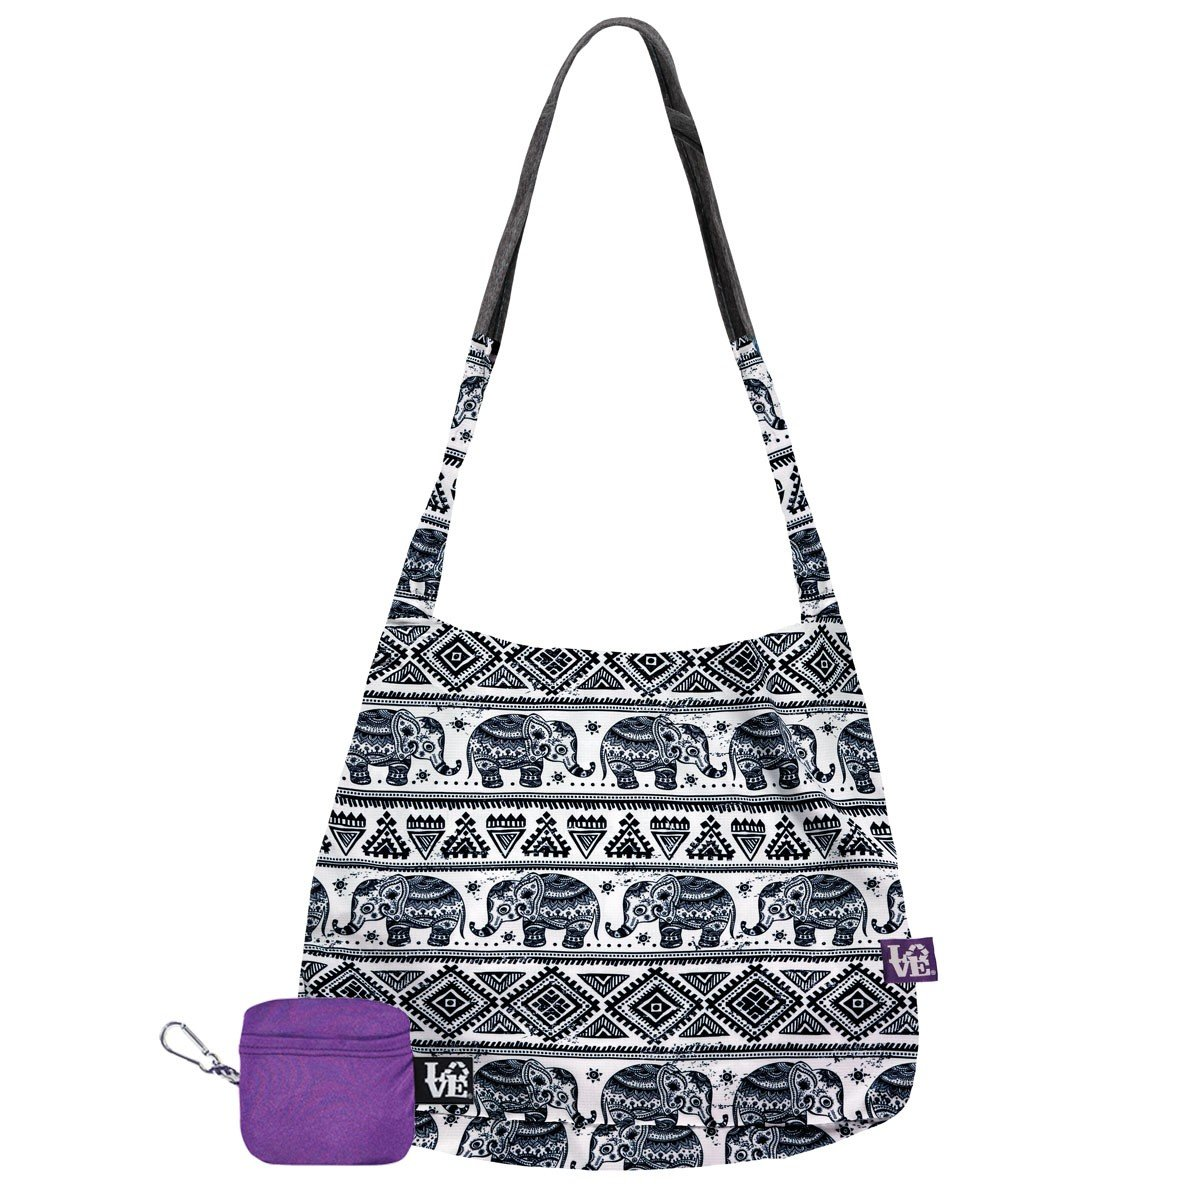 d61f944579 Amazon.com  Love Reusable Bags Stash It Tote in Elephant in the Room  Shoes